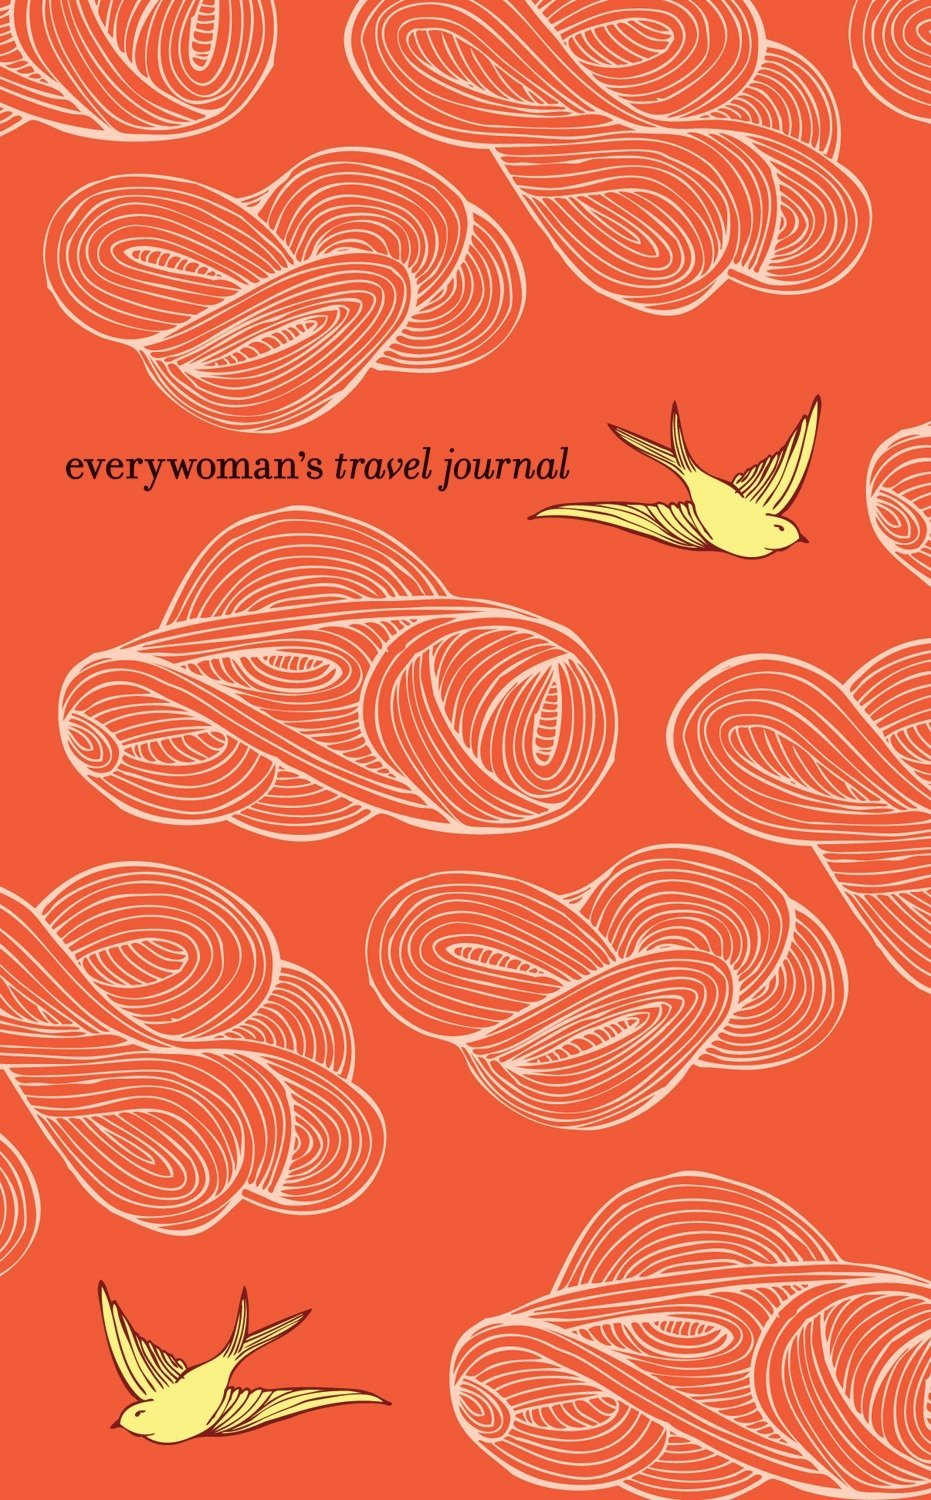 Image result for everywomans travel journal